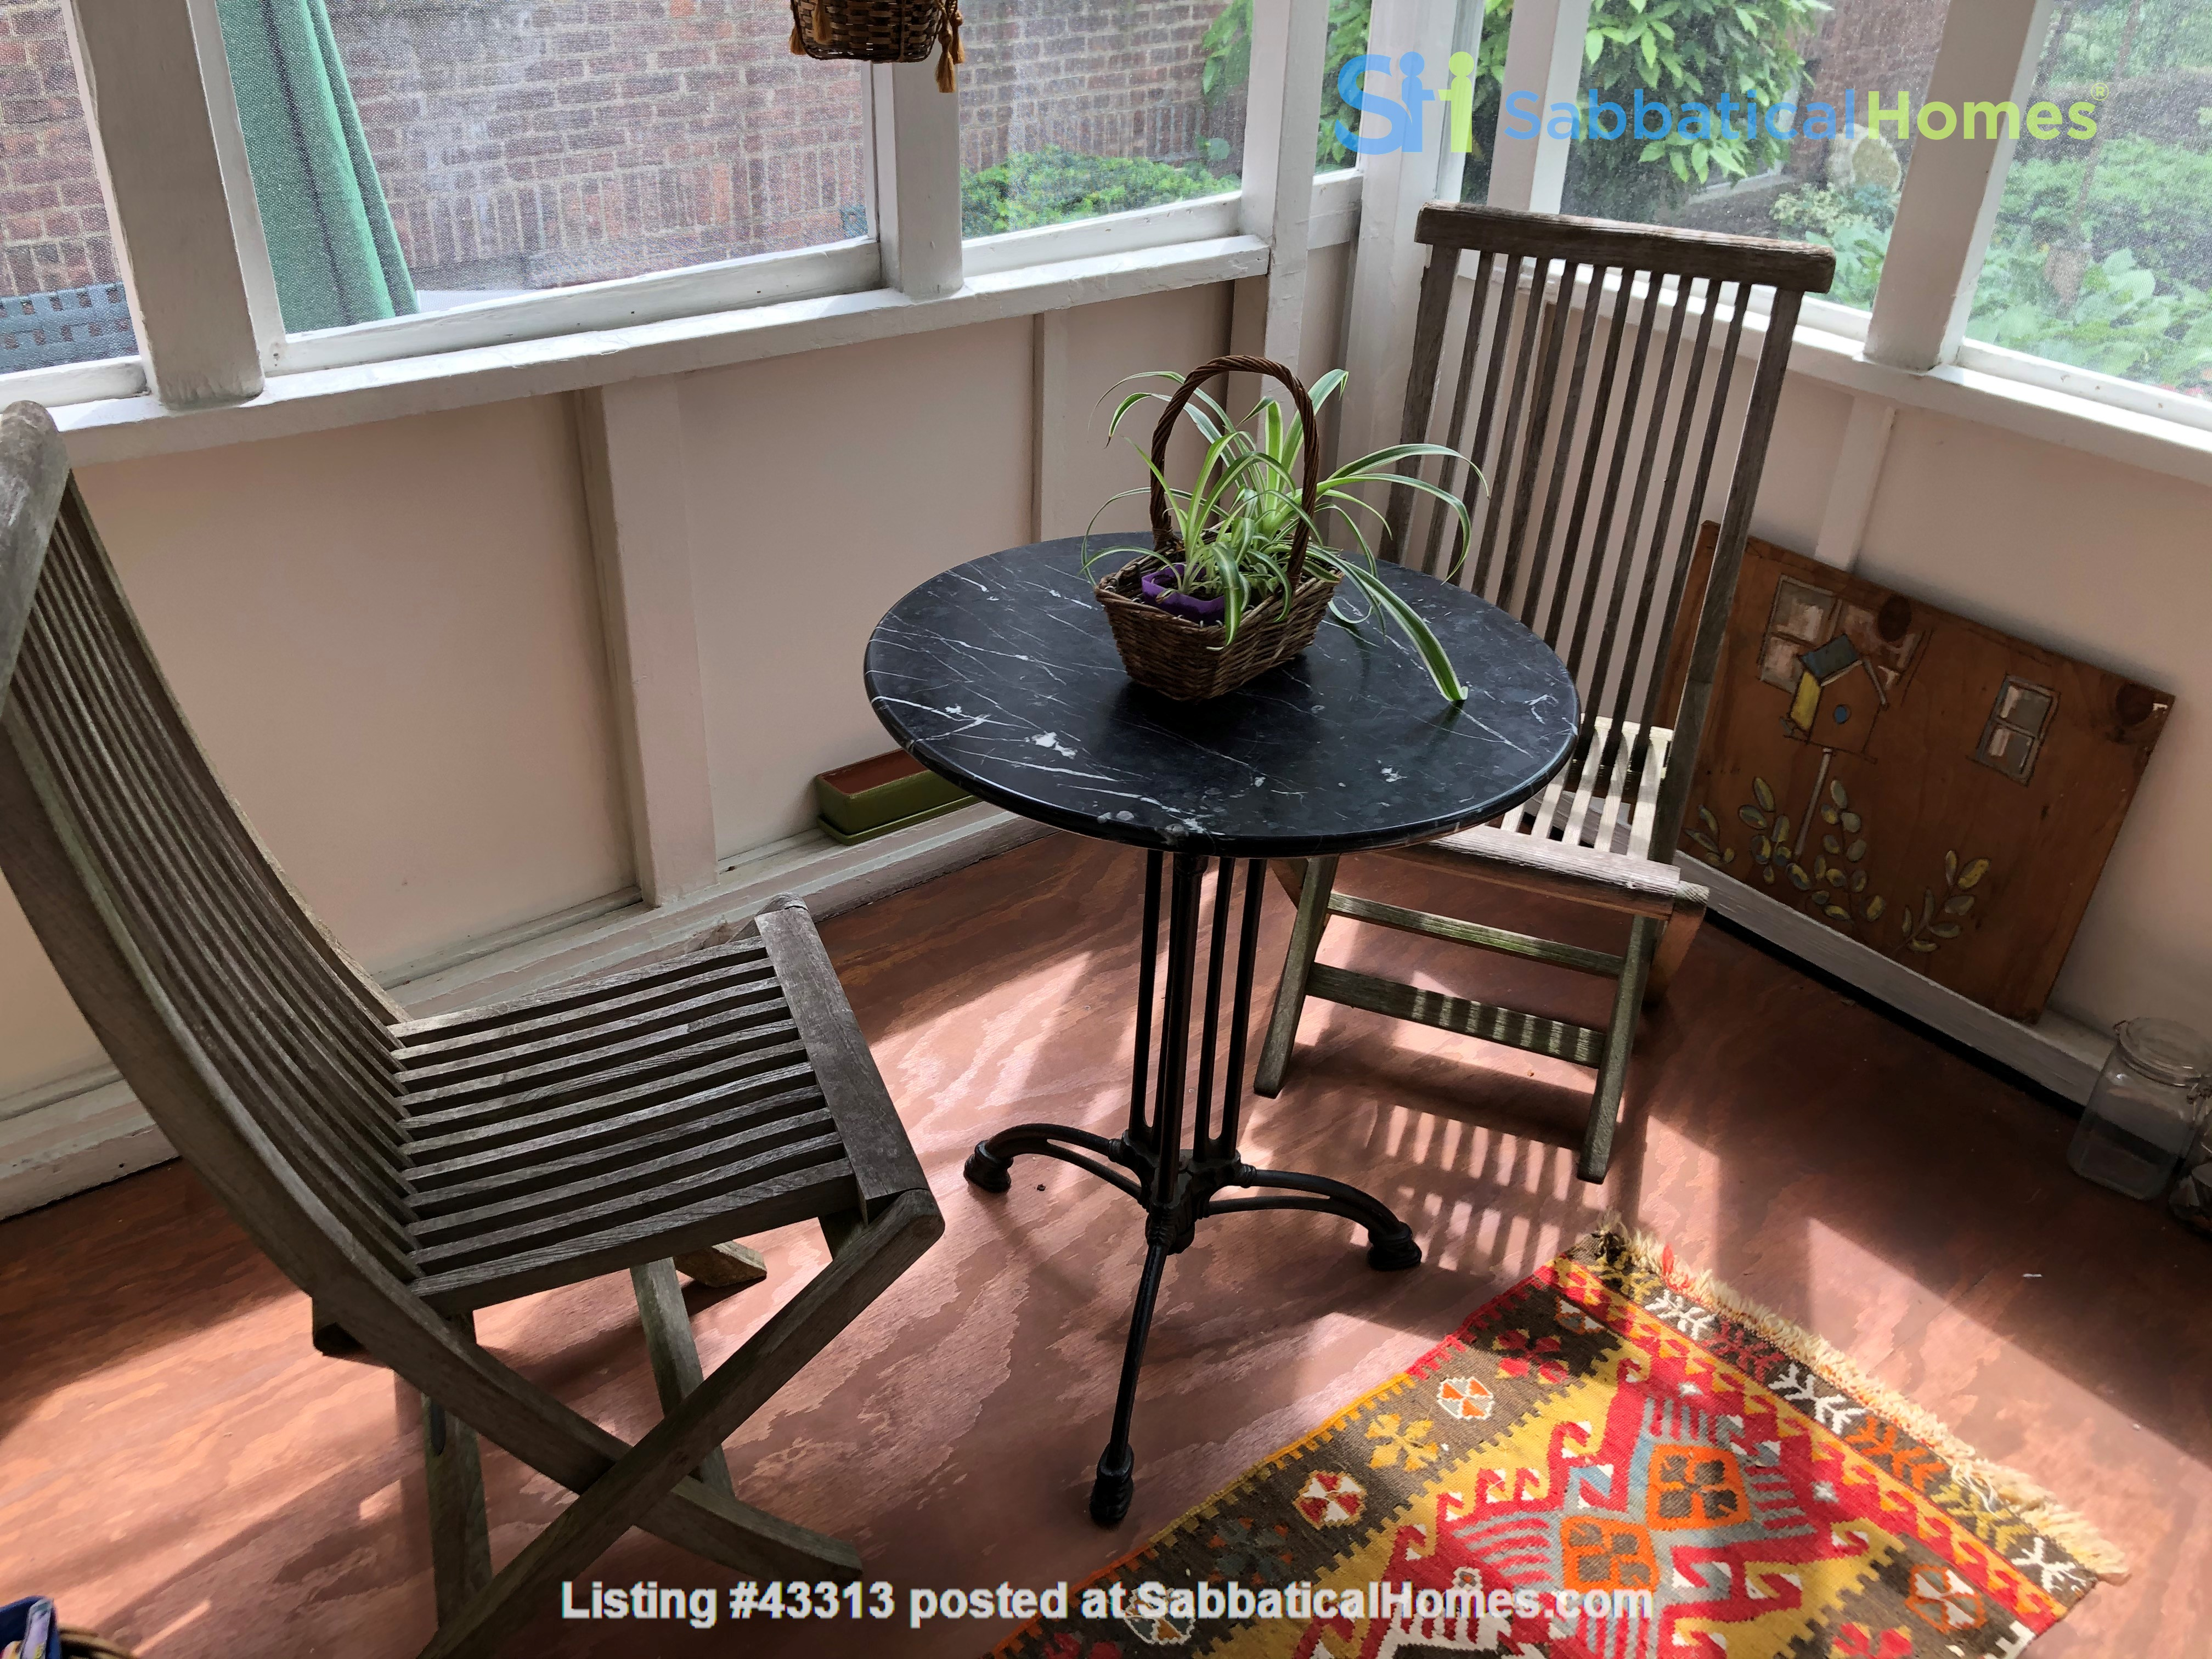 2-bedroom in Leafy New York City neighborhood Home Rental in Queens County, New York, United States 0